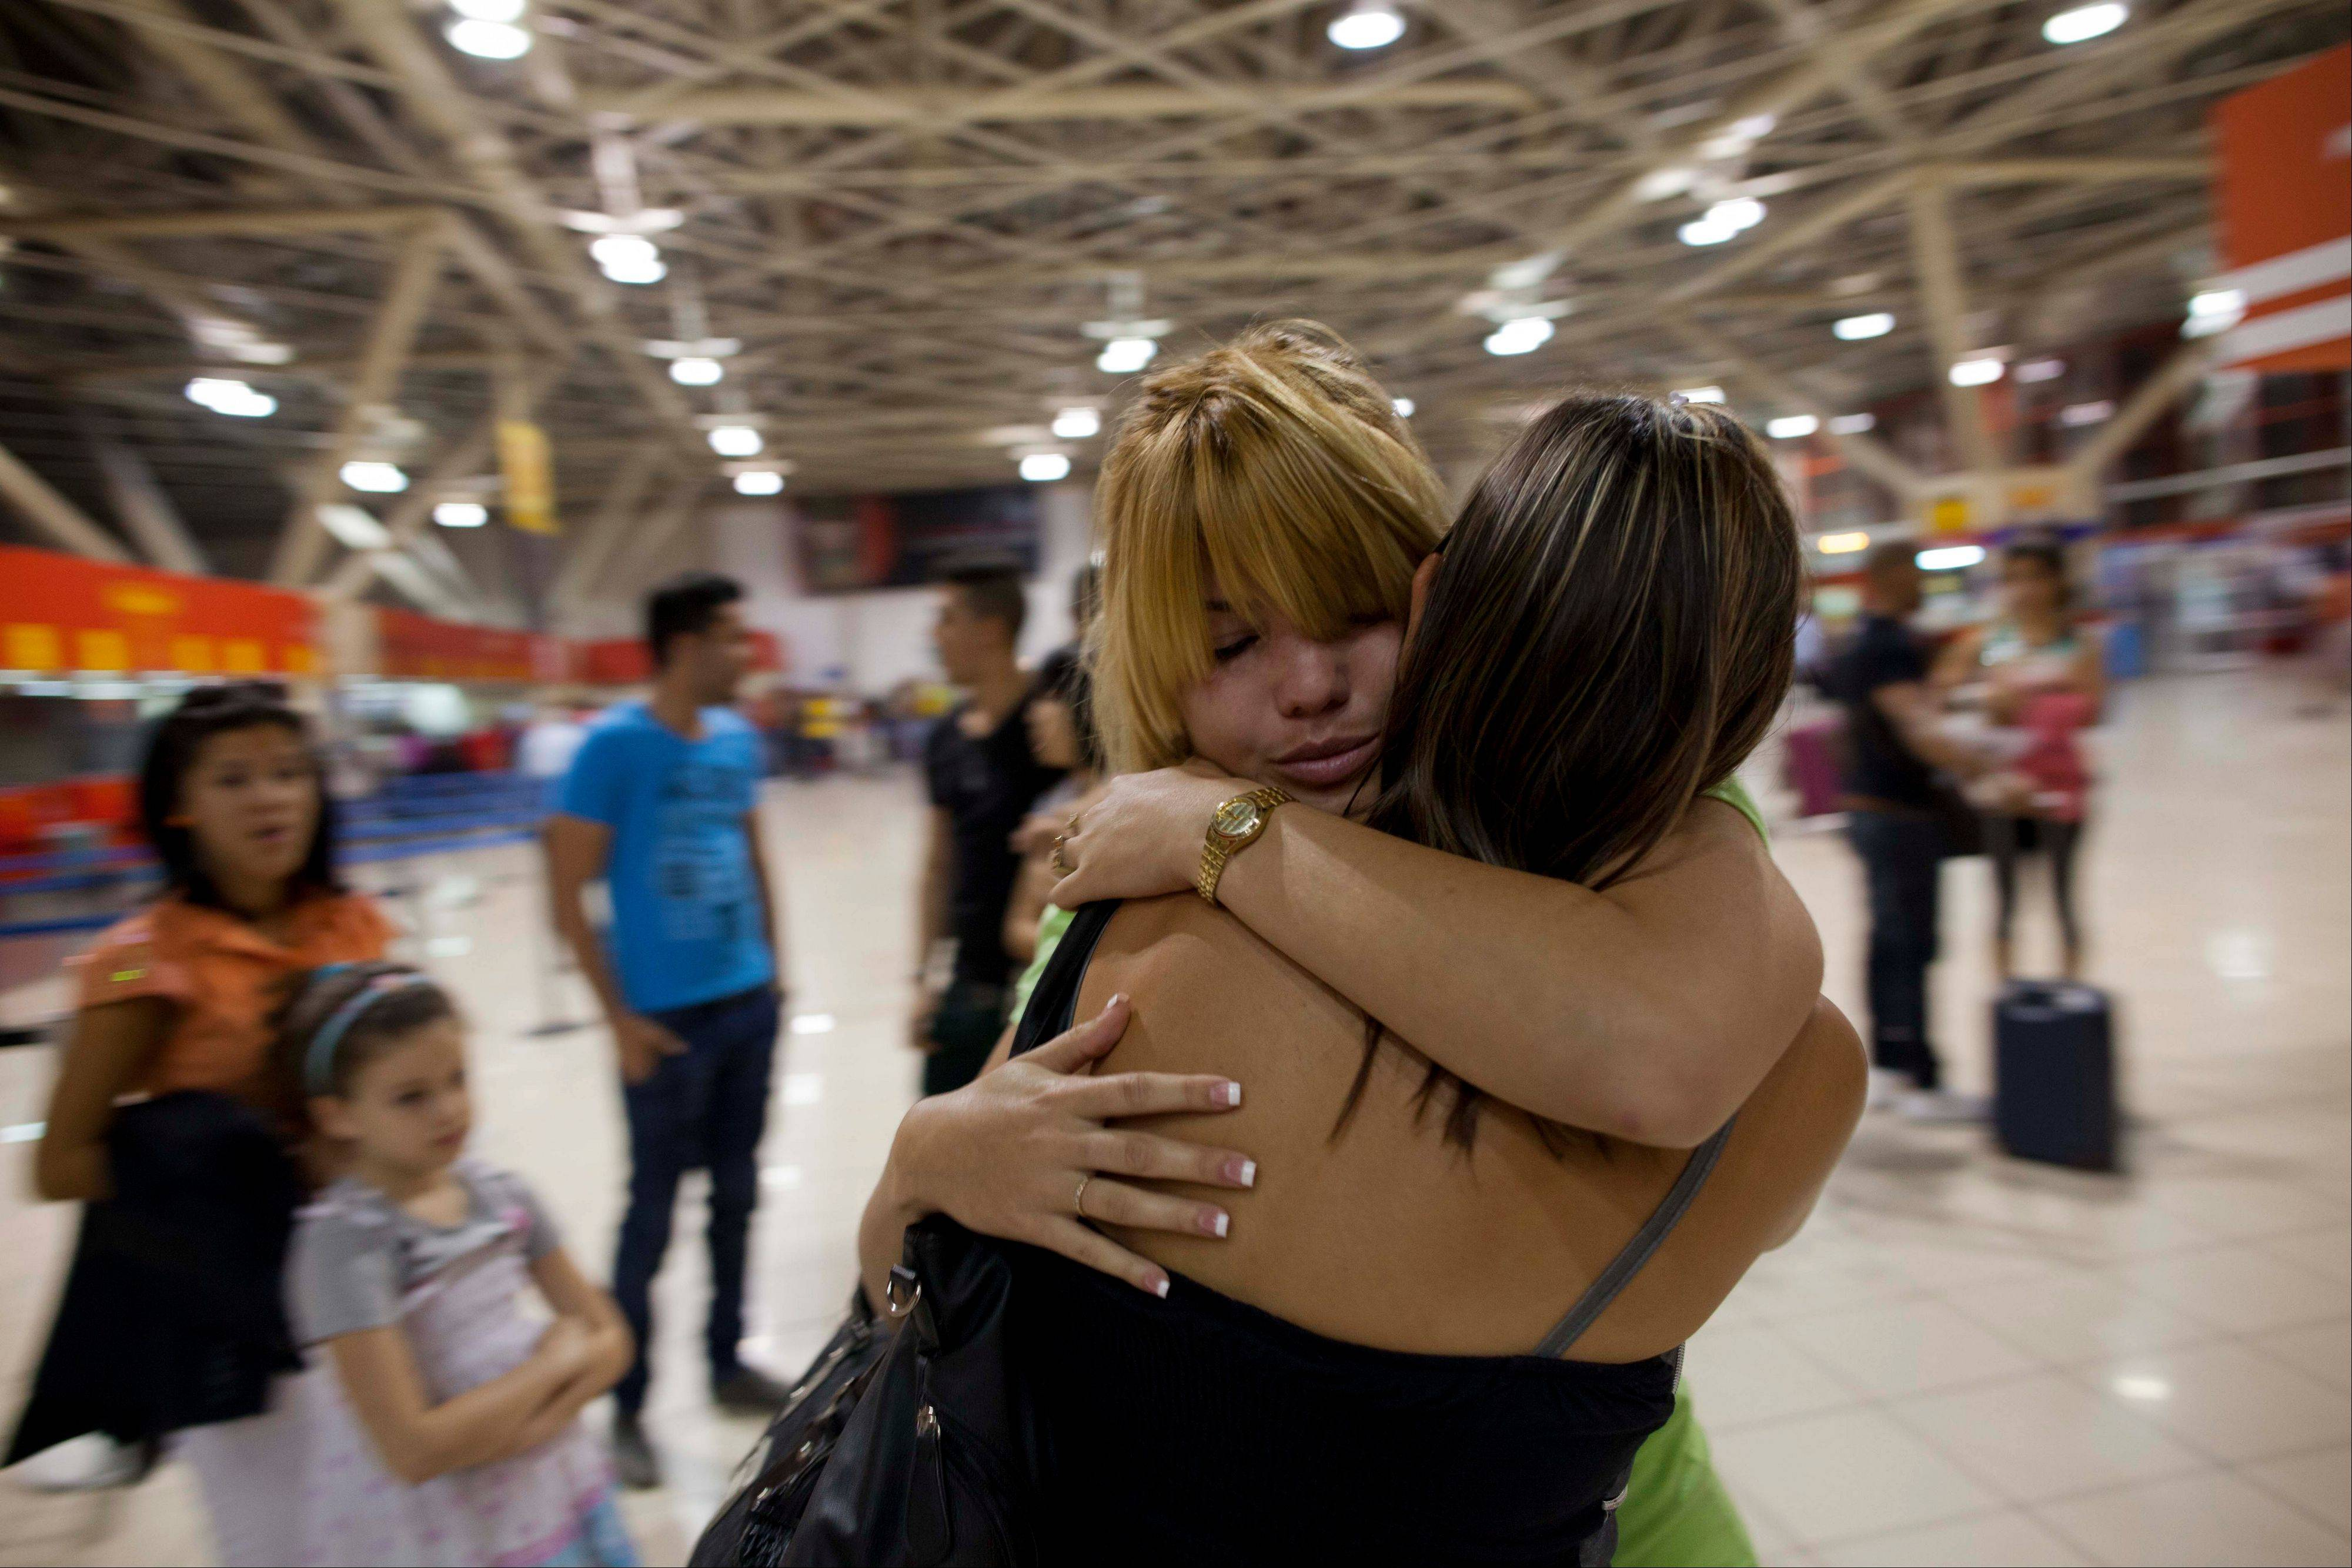 Amalia Reigosa, hugs her sister Jaynet goodbye at the Jose Marti International Airport in Havana, Cuba, before her trip to Milan, Itlay. Reigosa was one of the first Cubans to take advantage of a travel reform that went into effect a year ago this week, when the government scrapped an exit visa requirement that for five decades had made it difficult for most islanders to go abroad.